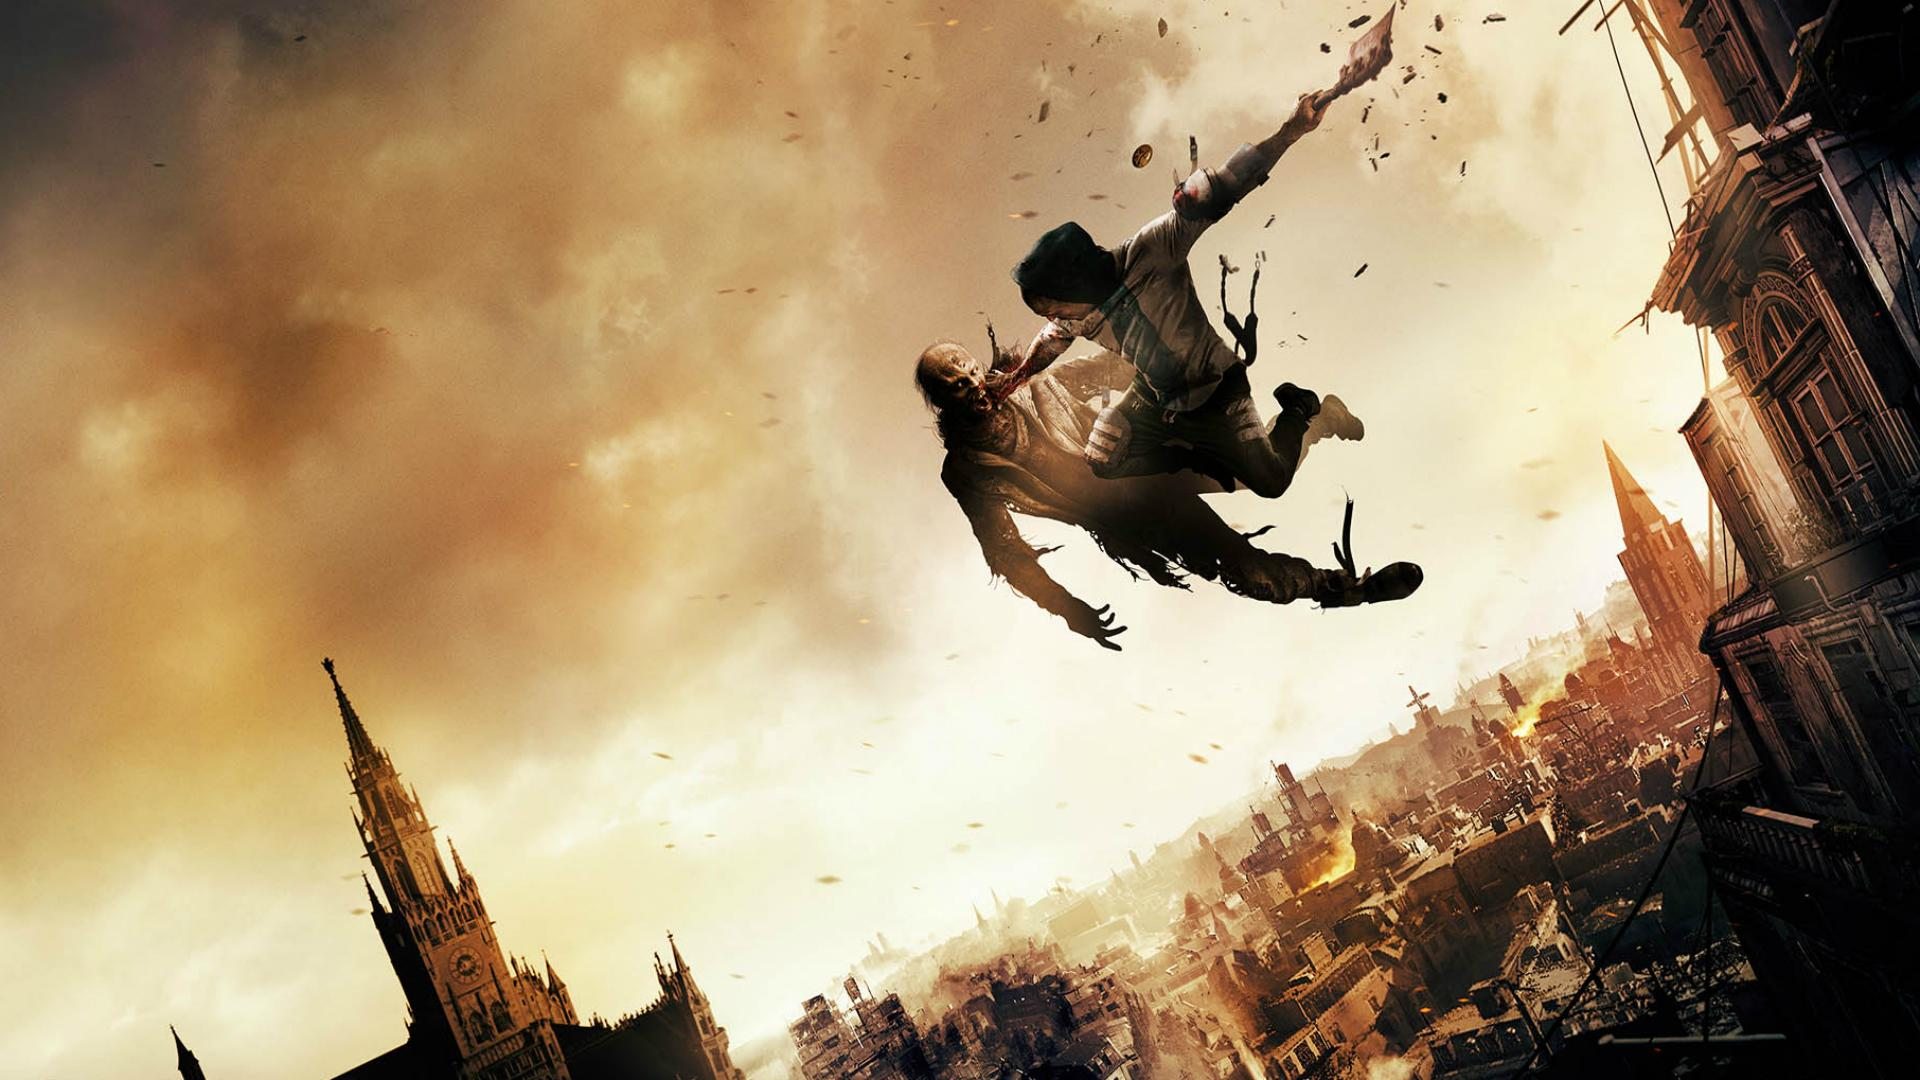 Dying Light 2 Available Platforms